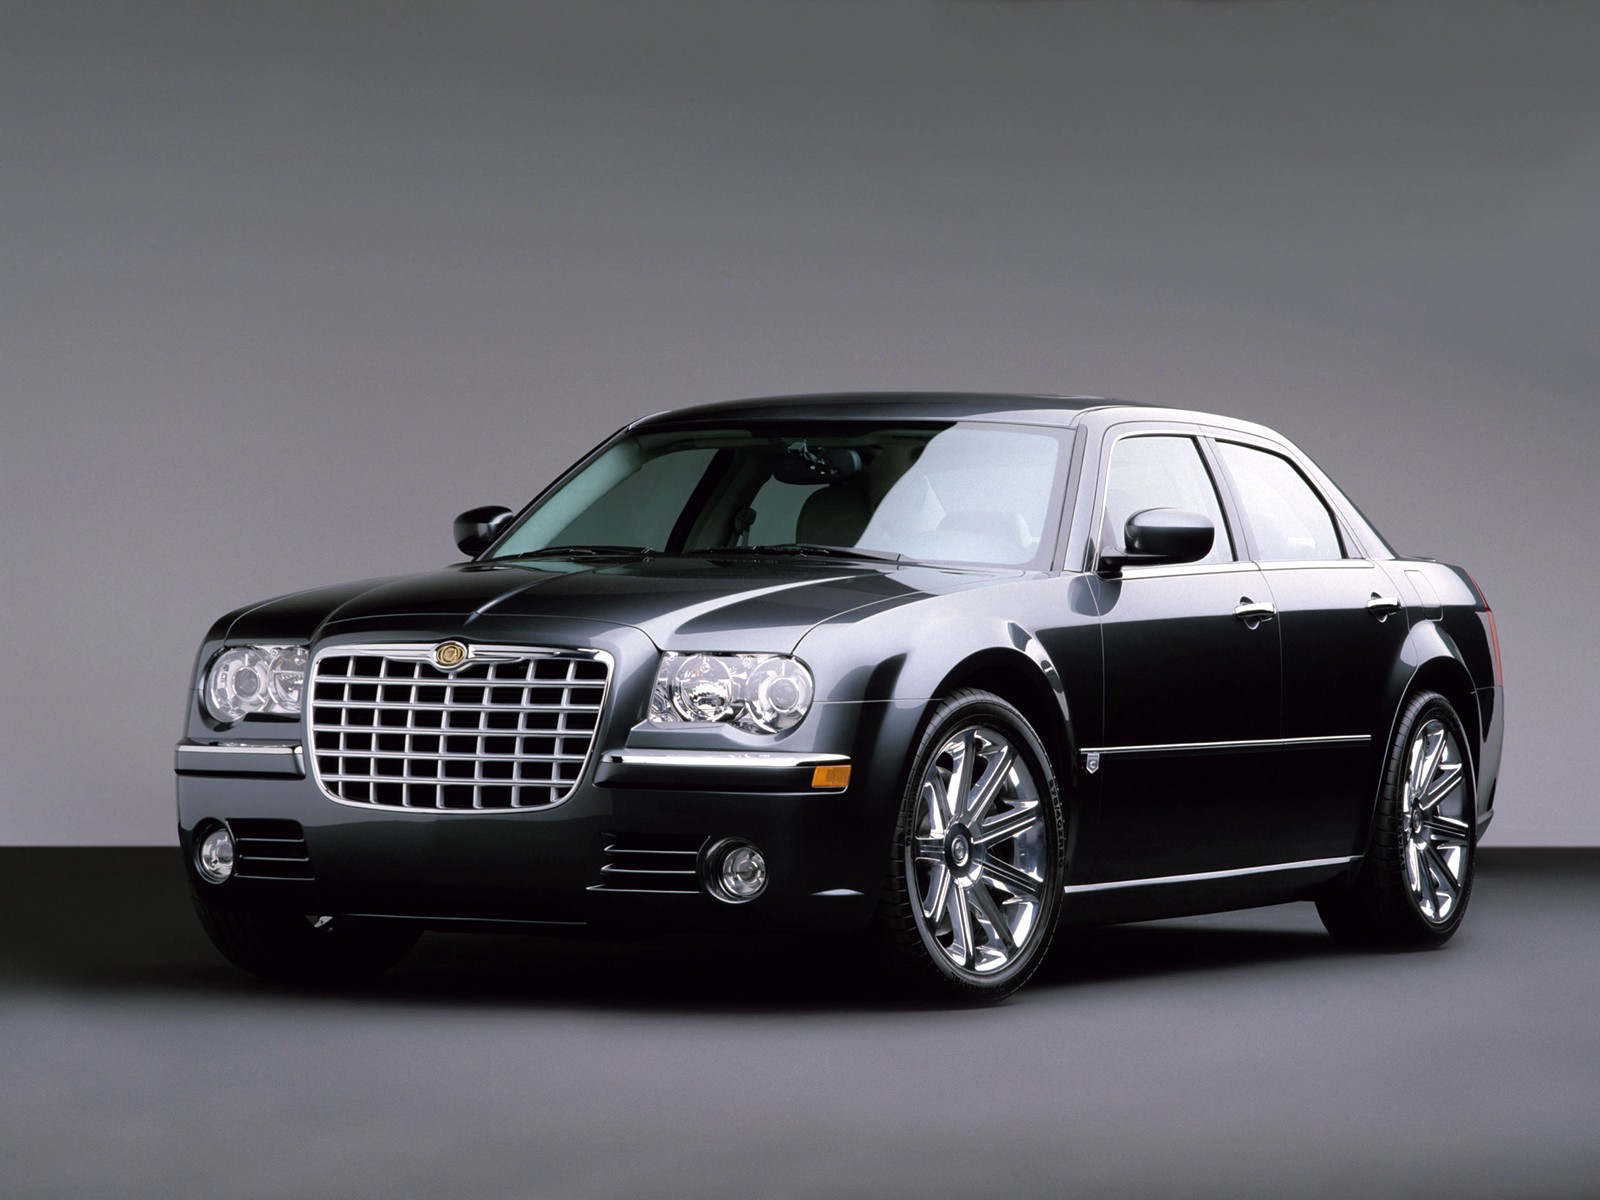 chrysler car 66 Hd Exotic Car Wallpapers